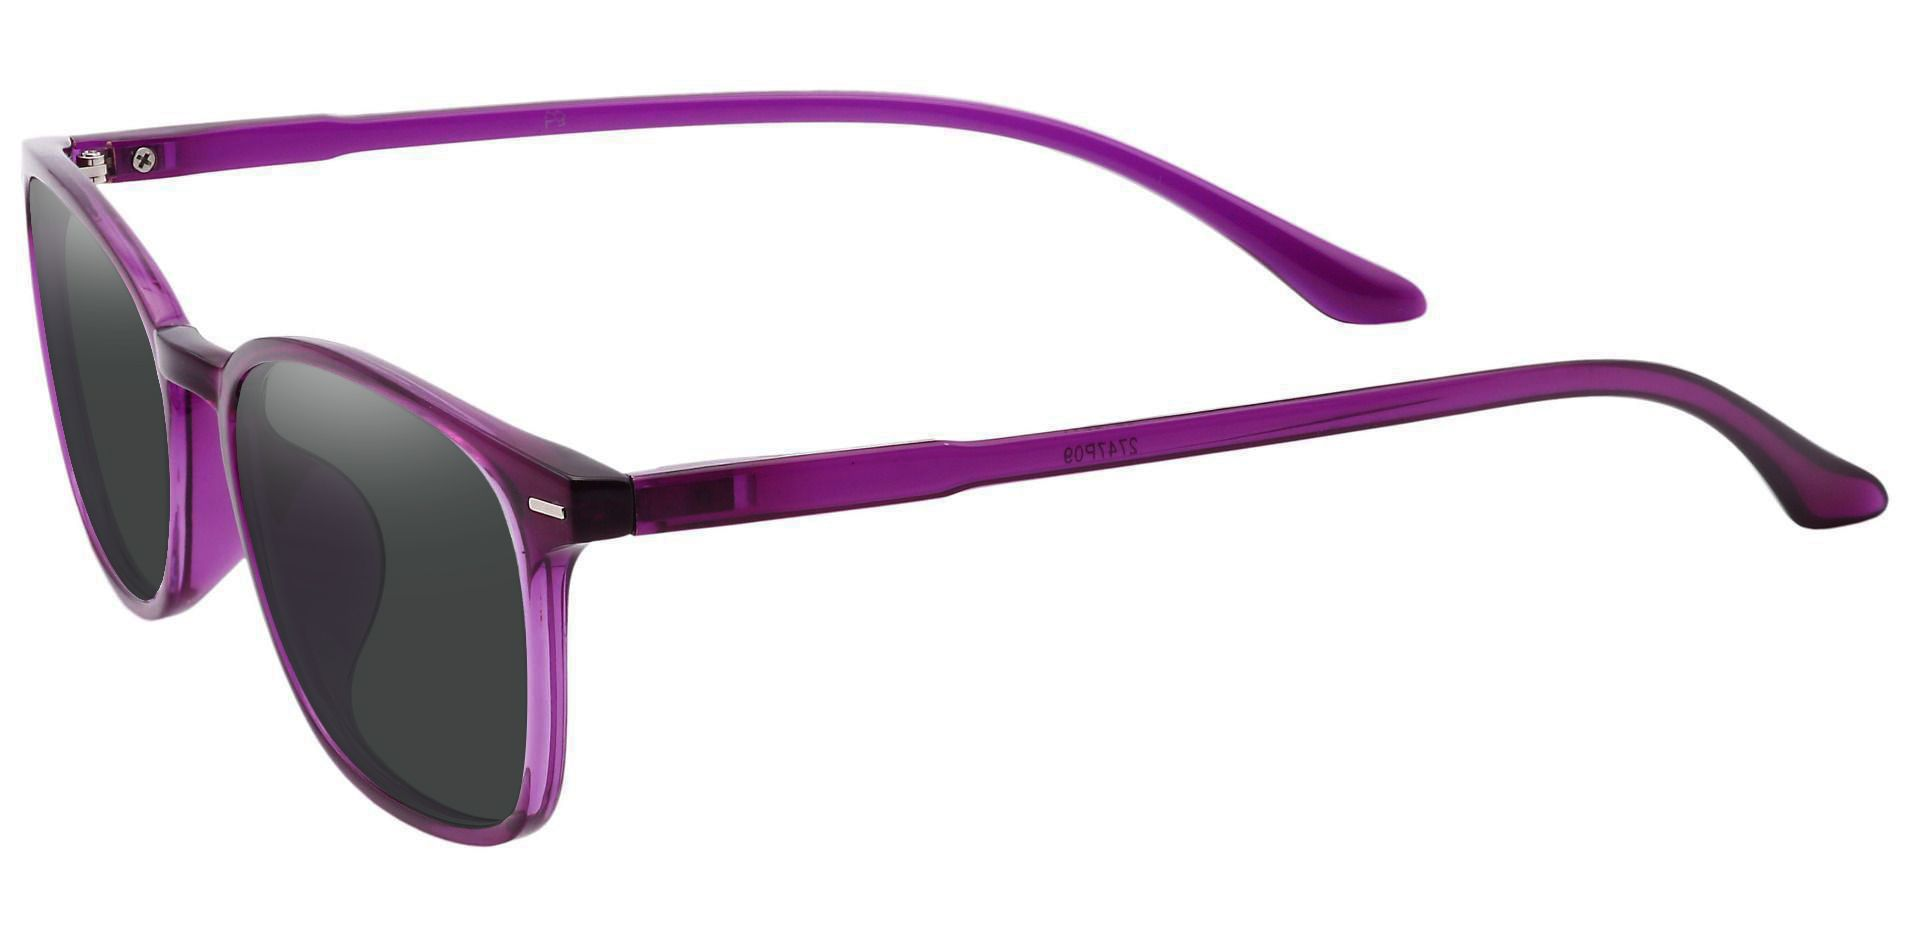 Cabo Oval Prescription Sunglasses - Purple Frame With Gray Lenses